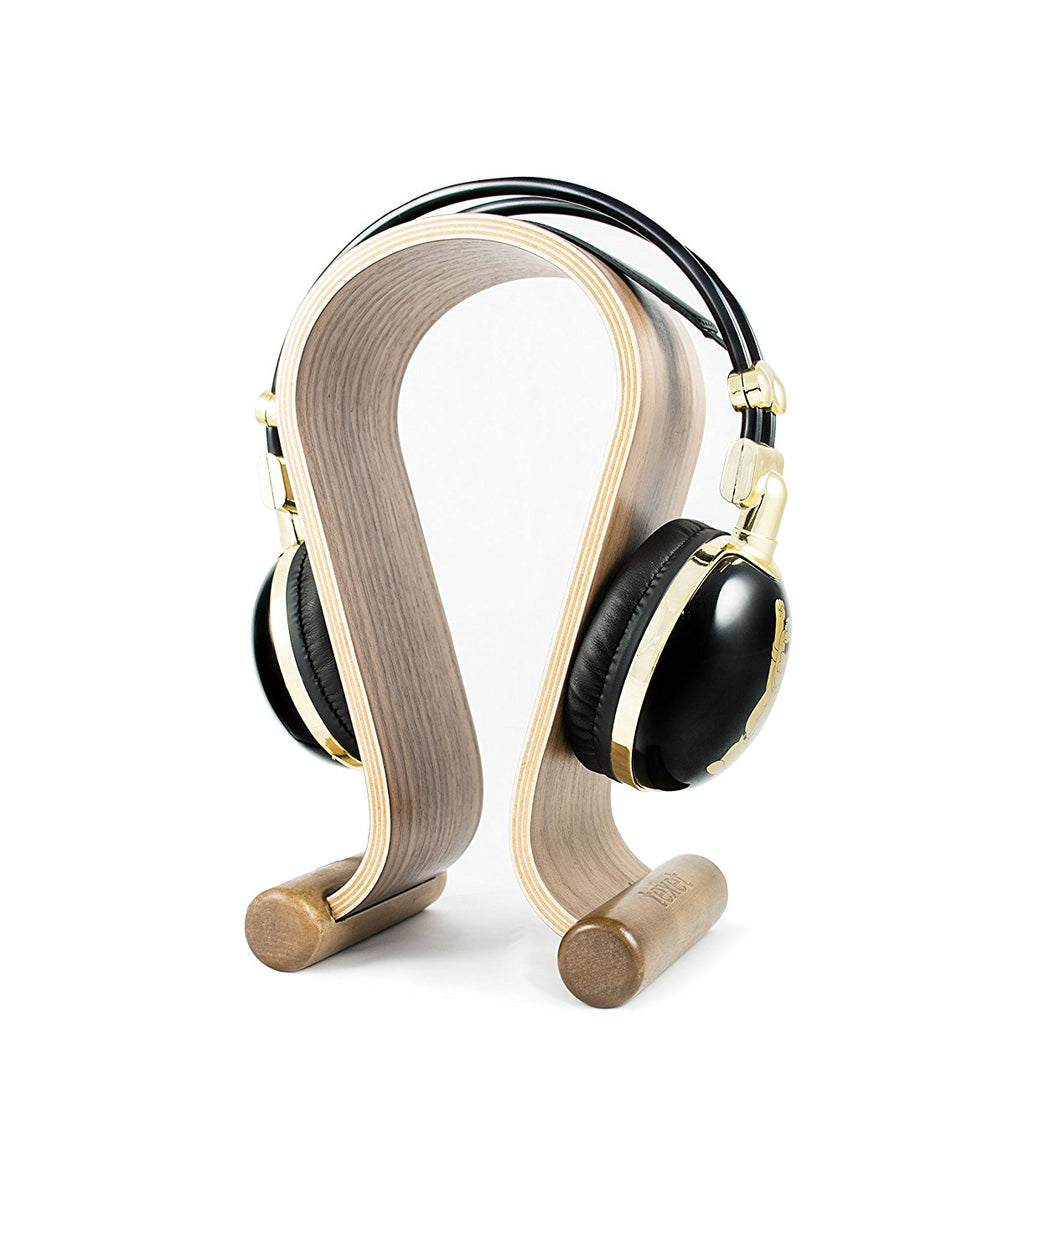 Texet Wooden Headphone Stand (Black Walnut) - HPS-001W - TEXET